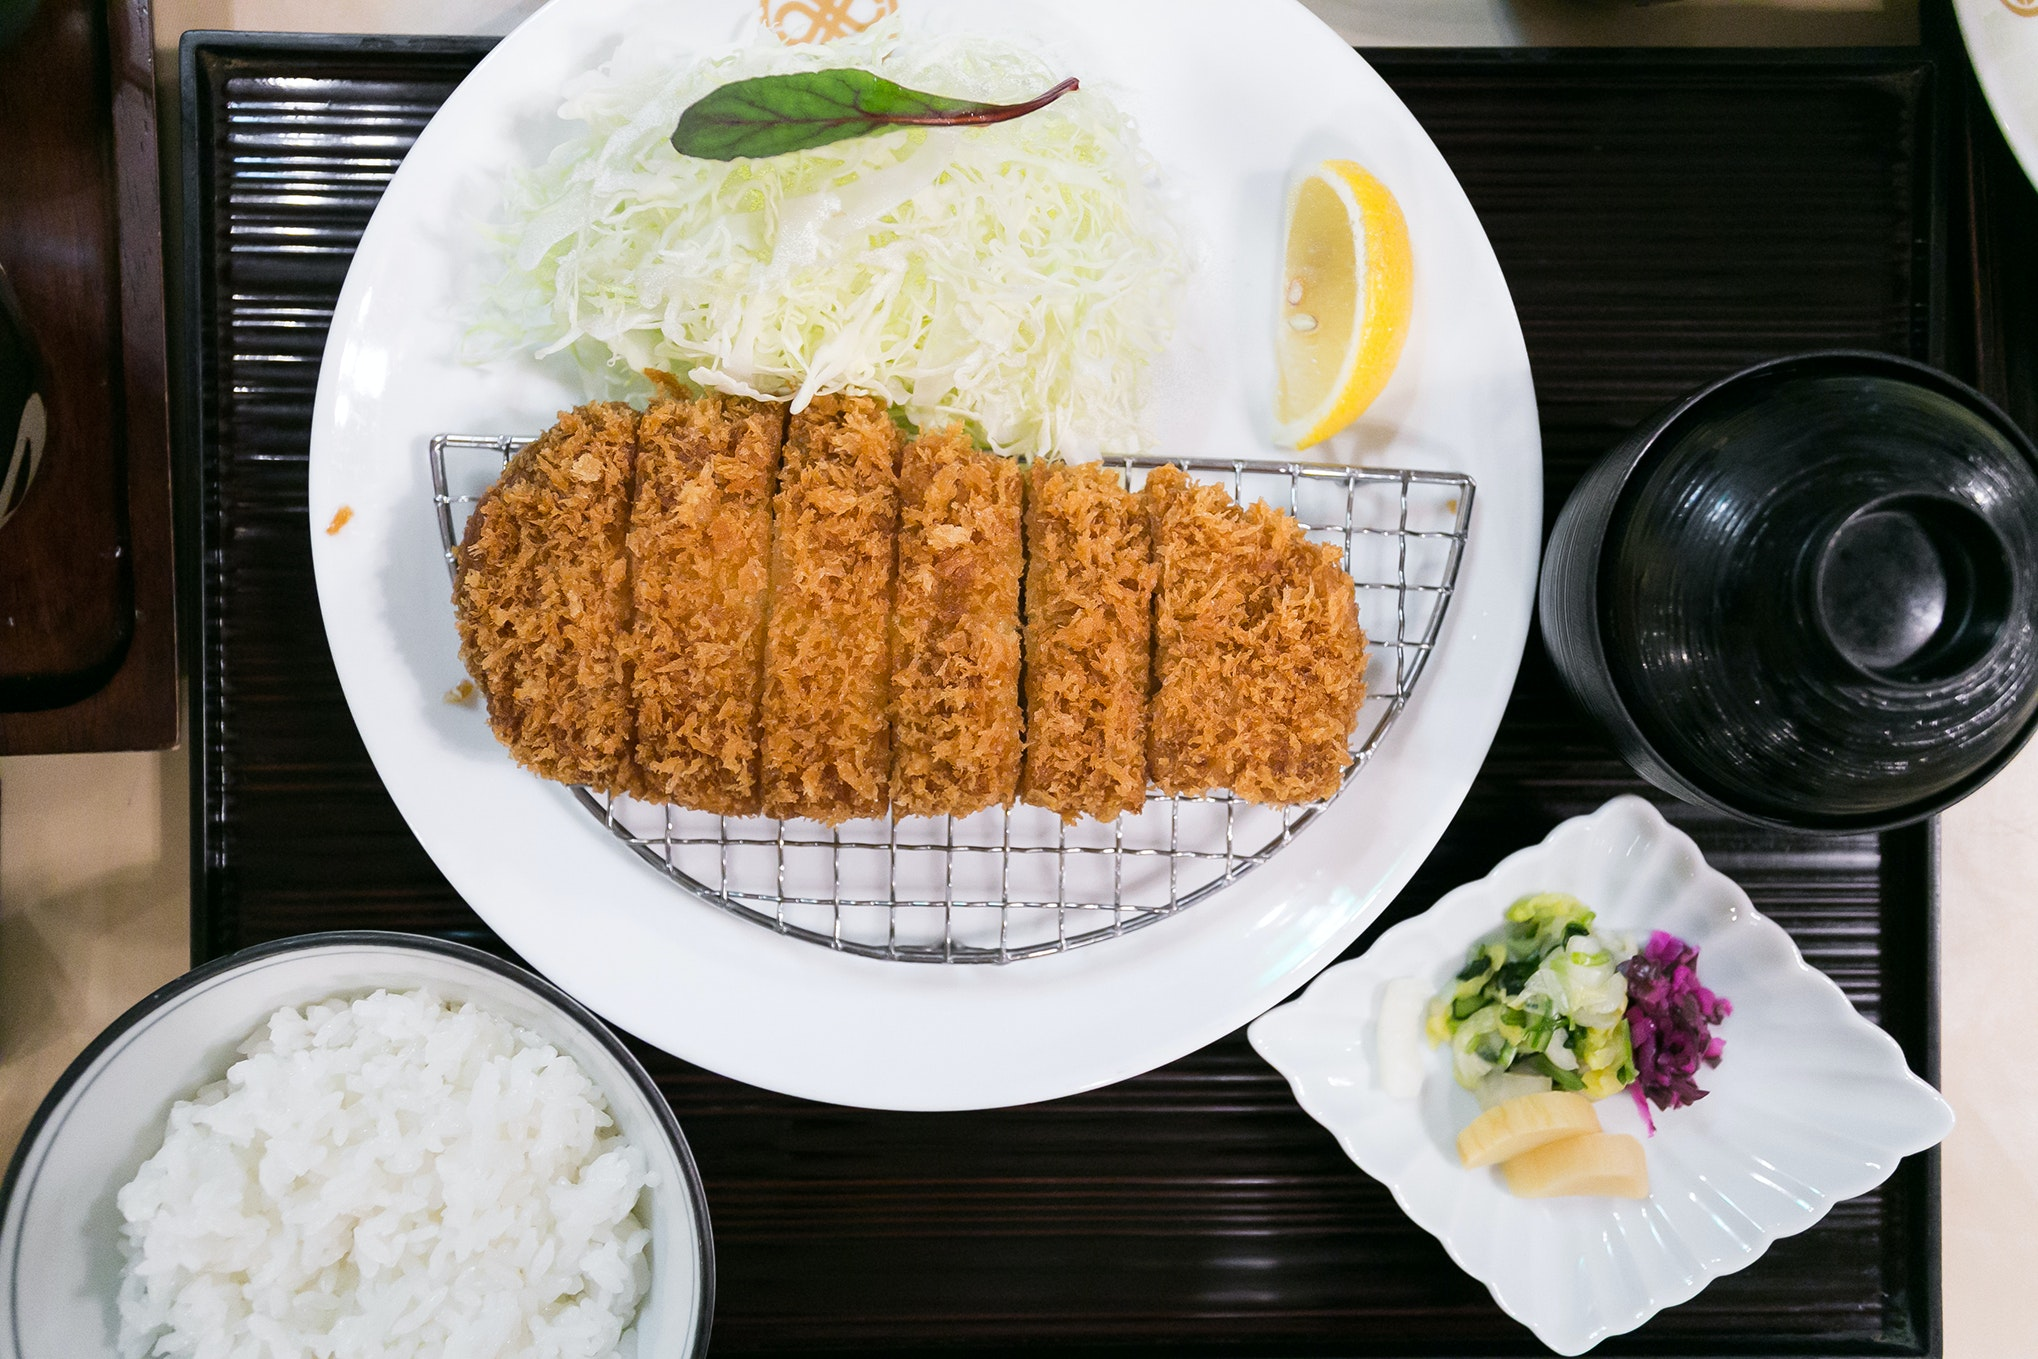 Tonkatsu is a pork dish that comes breaded and deep fried; sample one of its best iterations at Tokyo's Maisen restaurant.